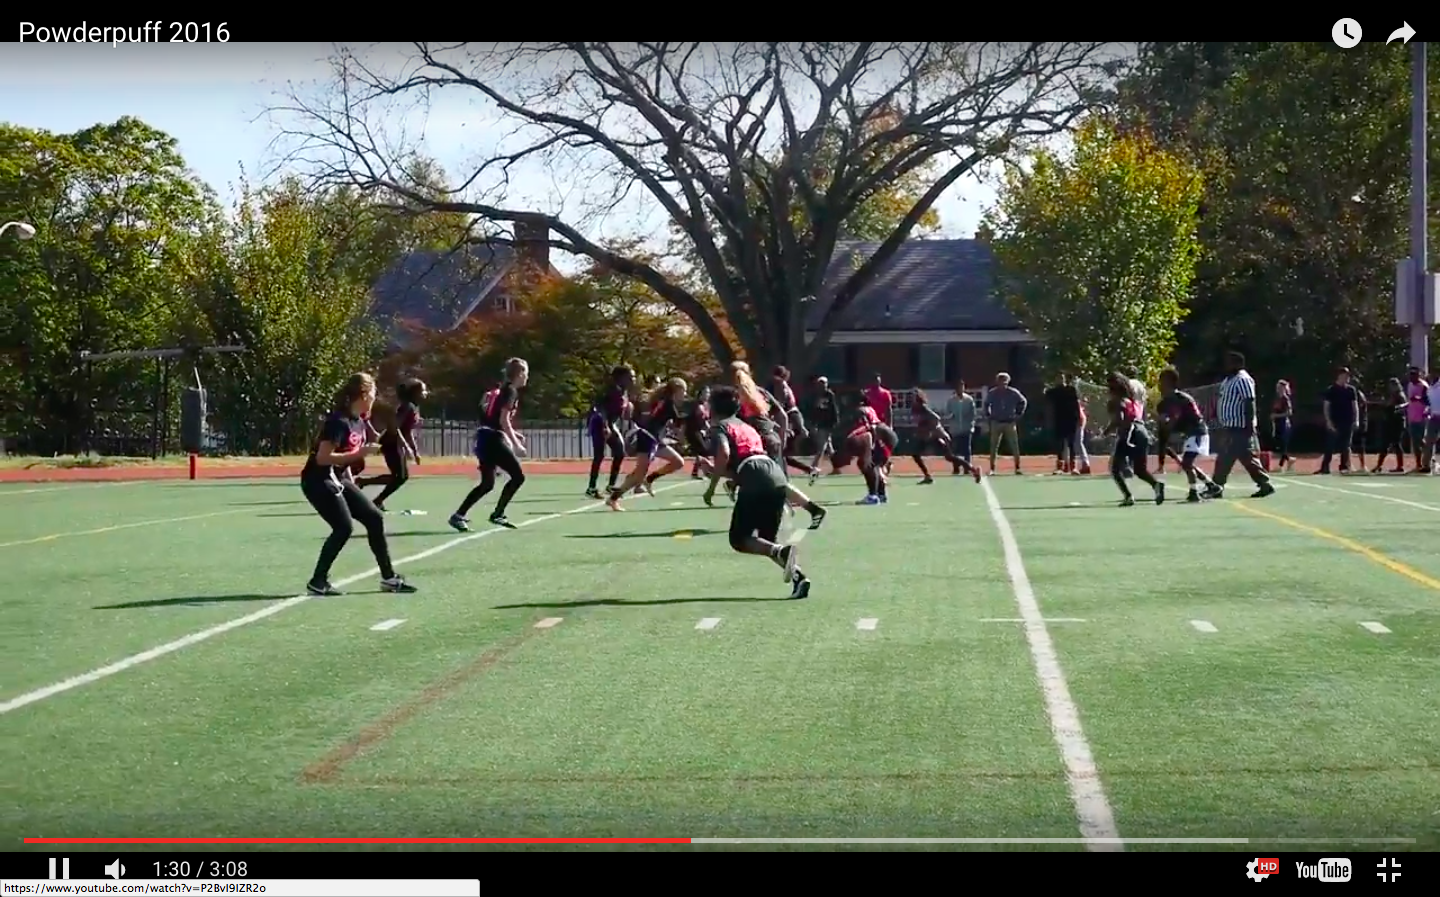 VIDEO: Seniors and juniors battle in Powderpuff 2016